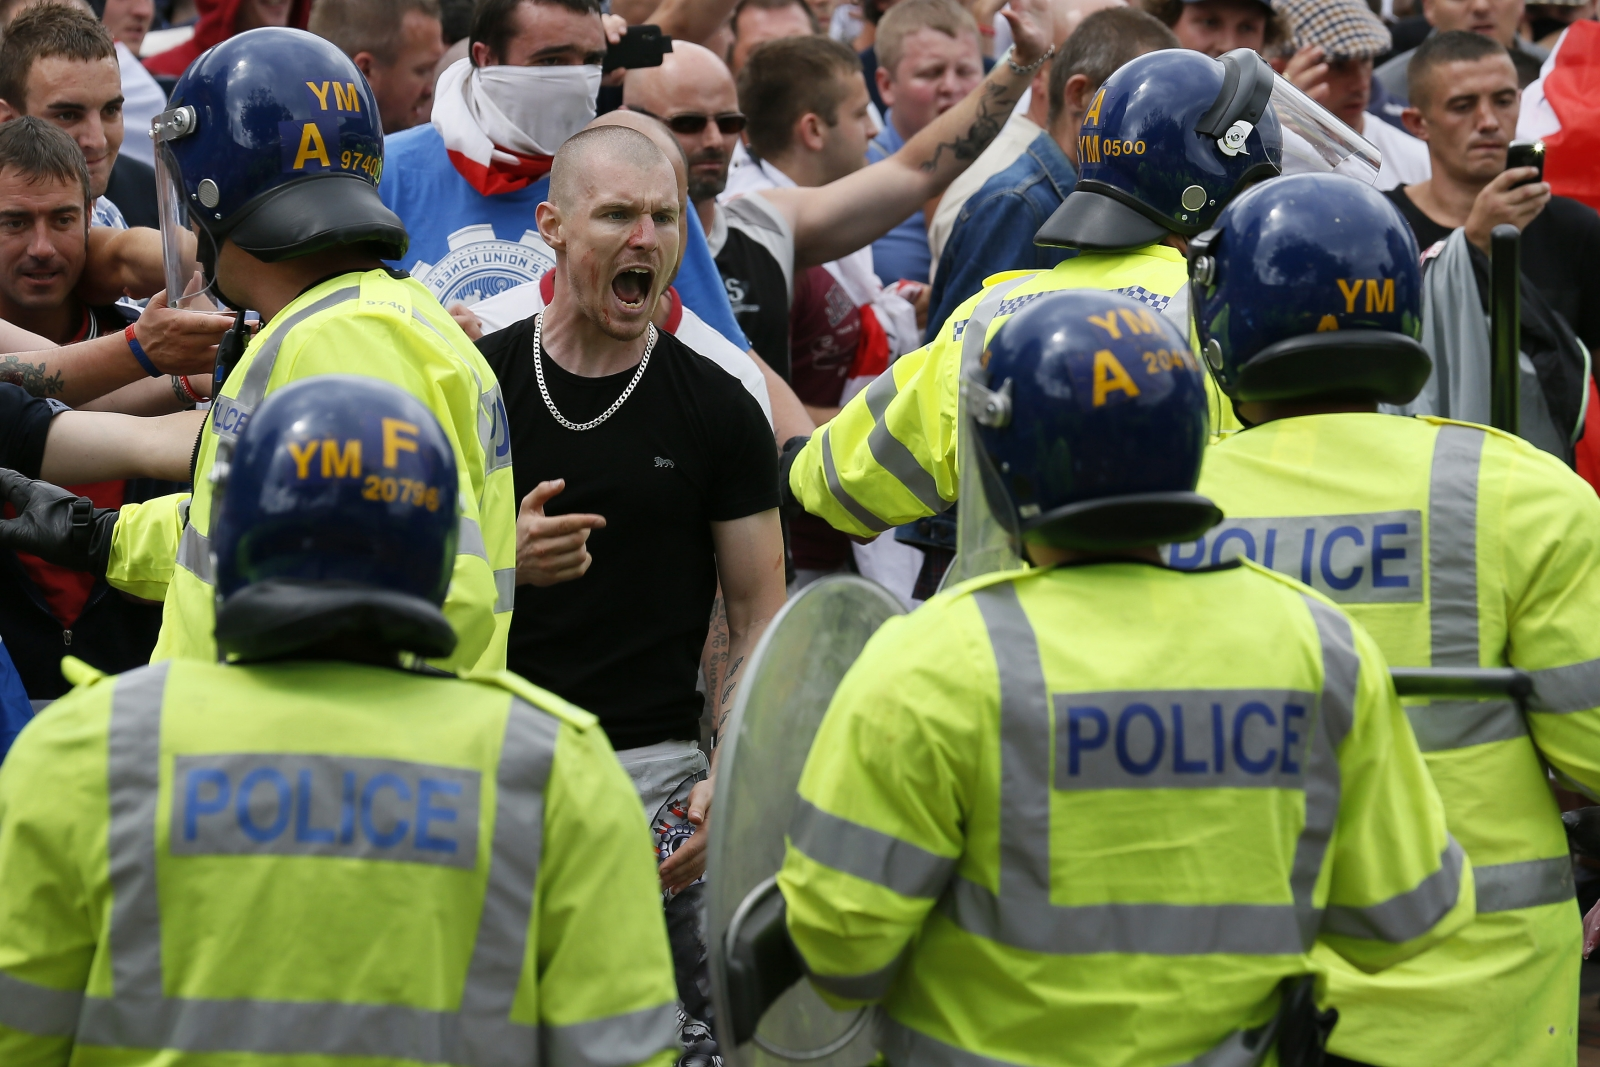 Members of the far-right EDL clash withpolice